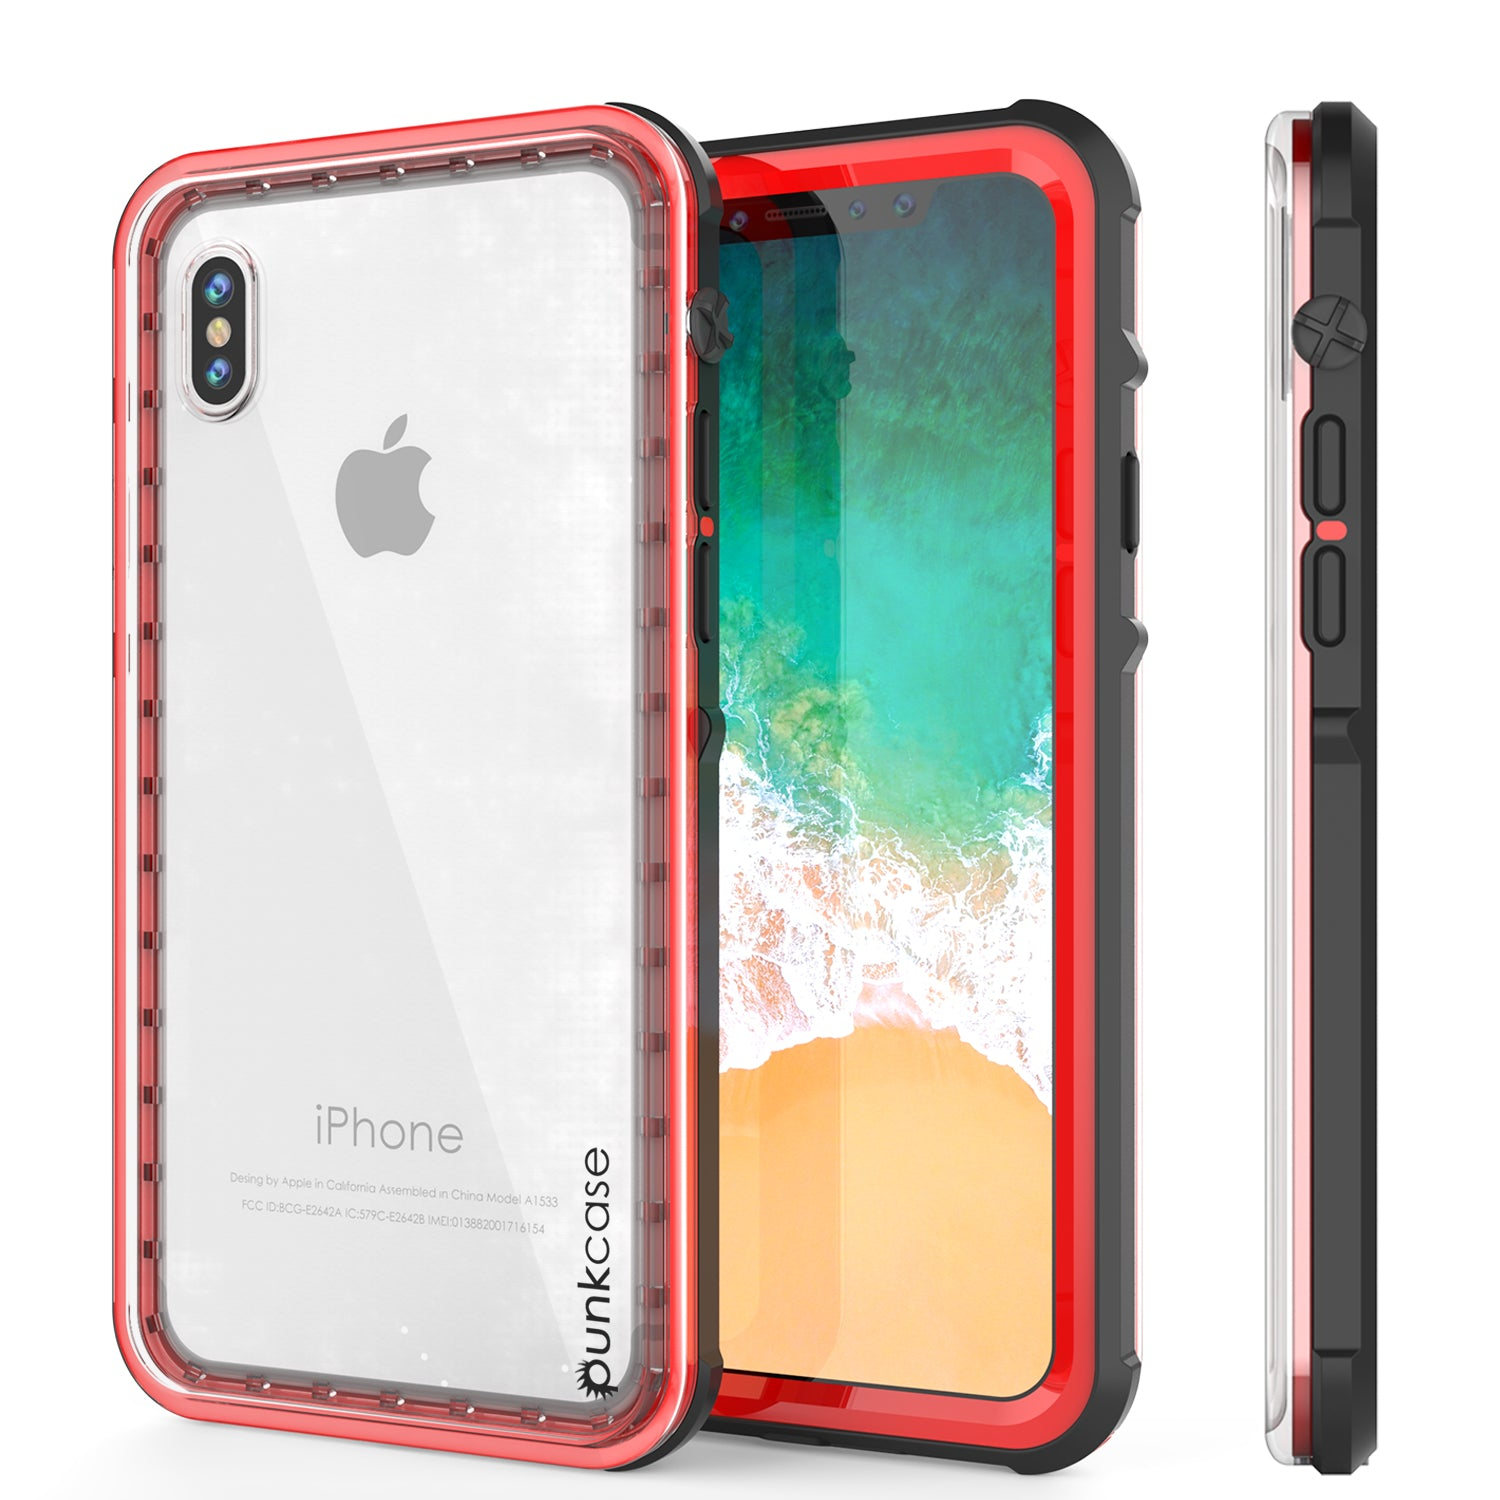 iPhone X Case, PUNKCase [CRYSTAL SERIES] Protective IP68 Certified Cover [Red]